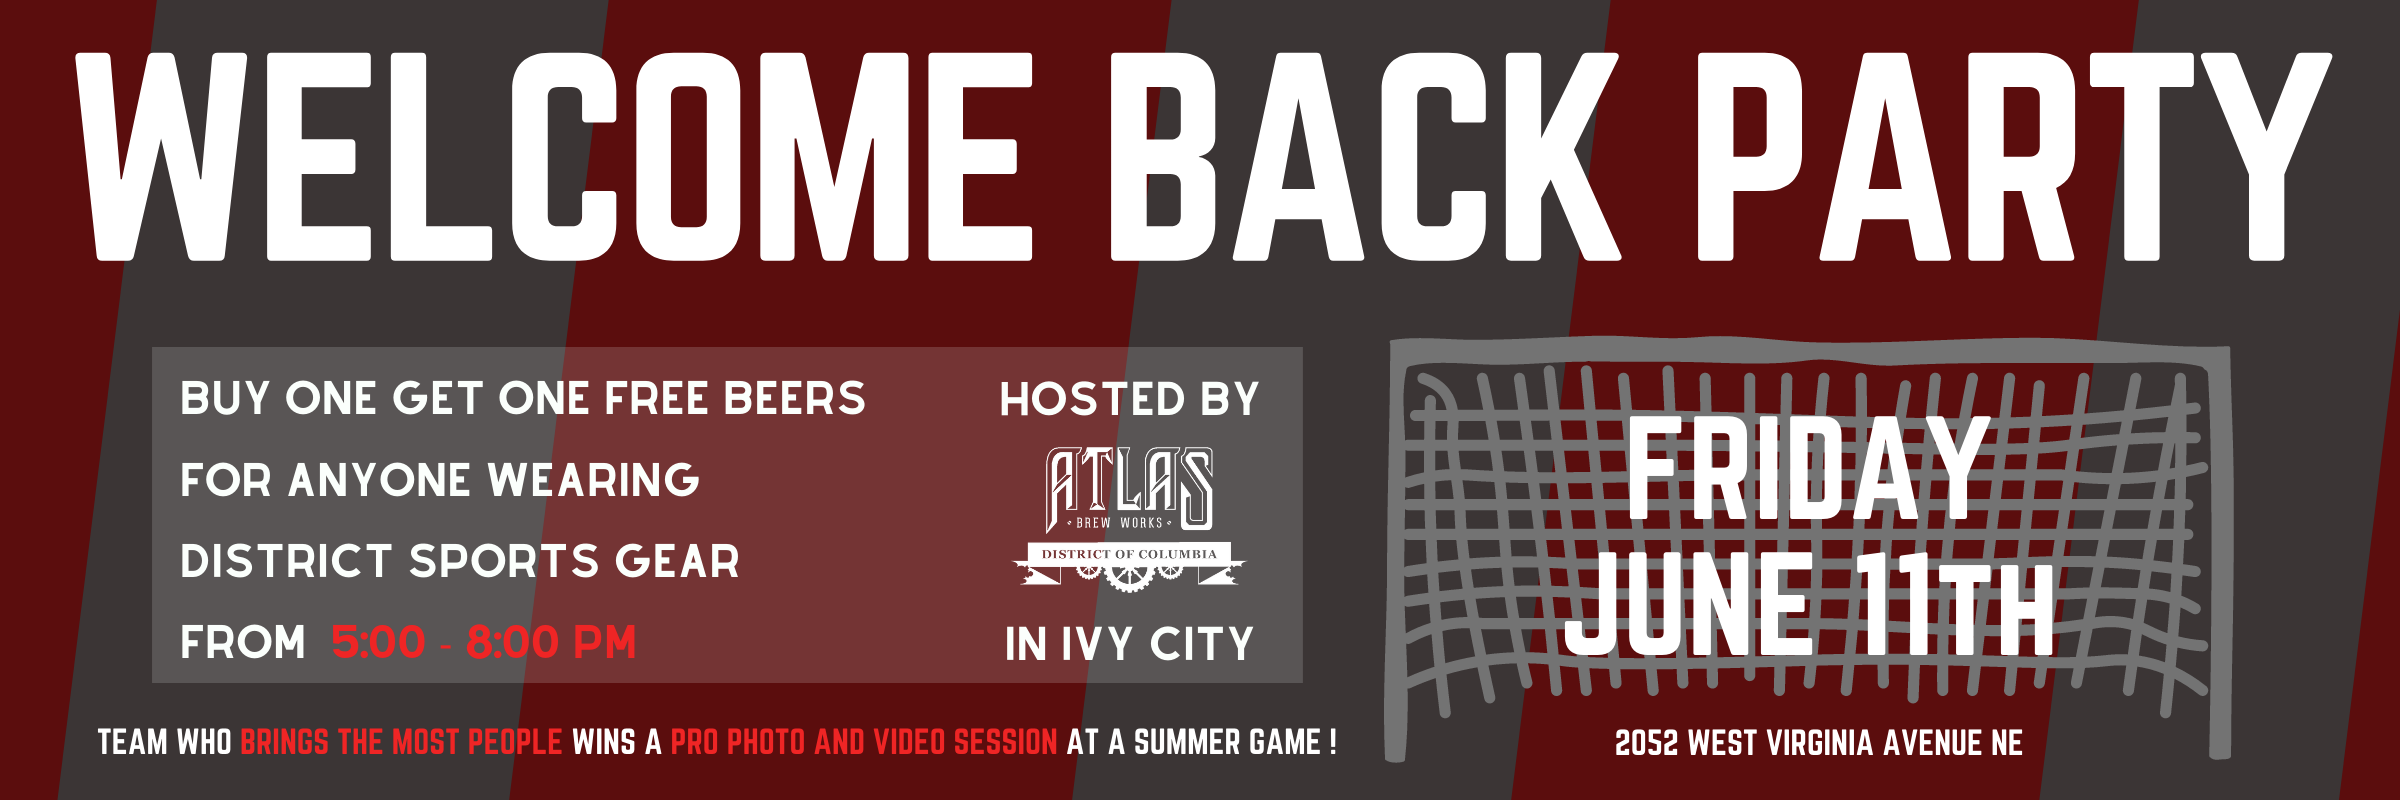 6/11 – Welcome Back Party at ATLAS BREW WORKS in Ivy City